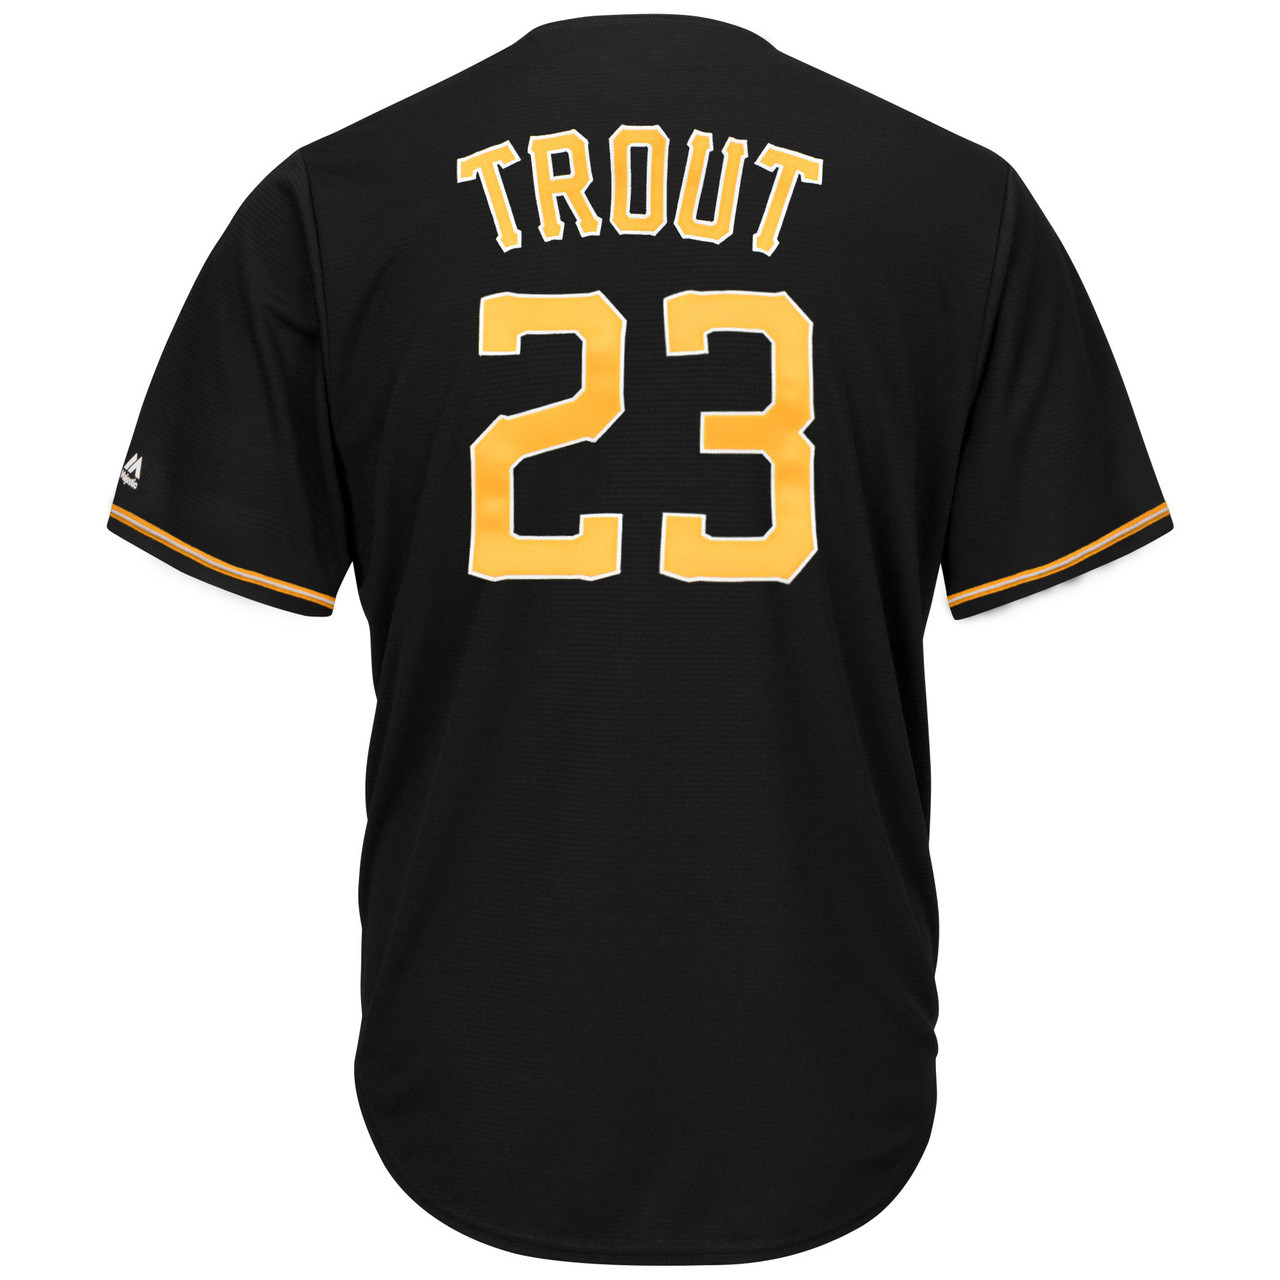 new style 9a347 7559c Alternate CoolBase Replica Player Jersey - MensApparelJerseys - Salt Lake  Bees - Trout Mike - Primary - Black - Majestic